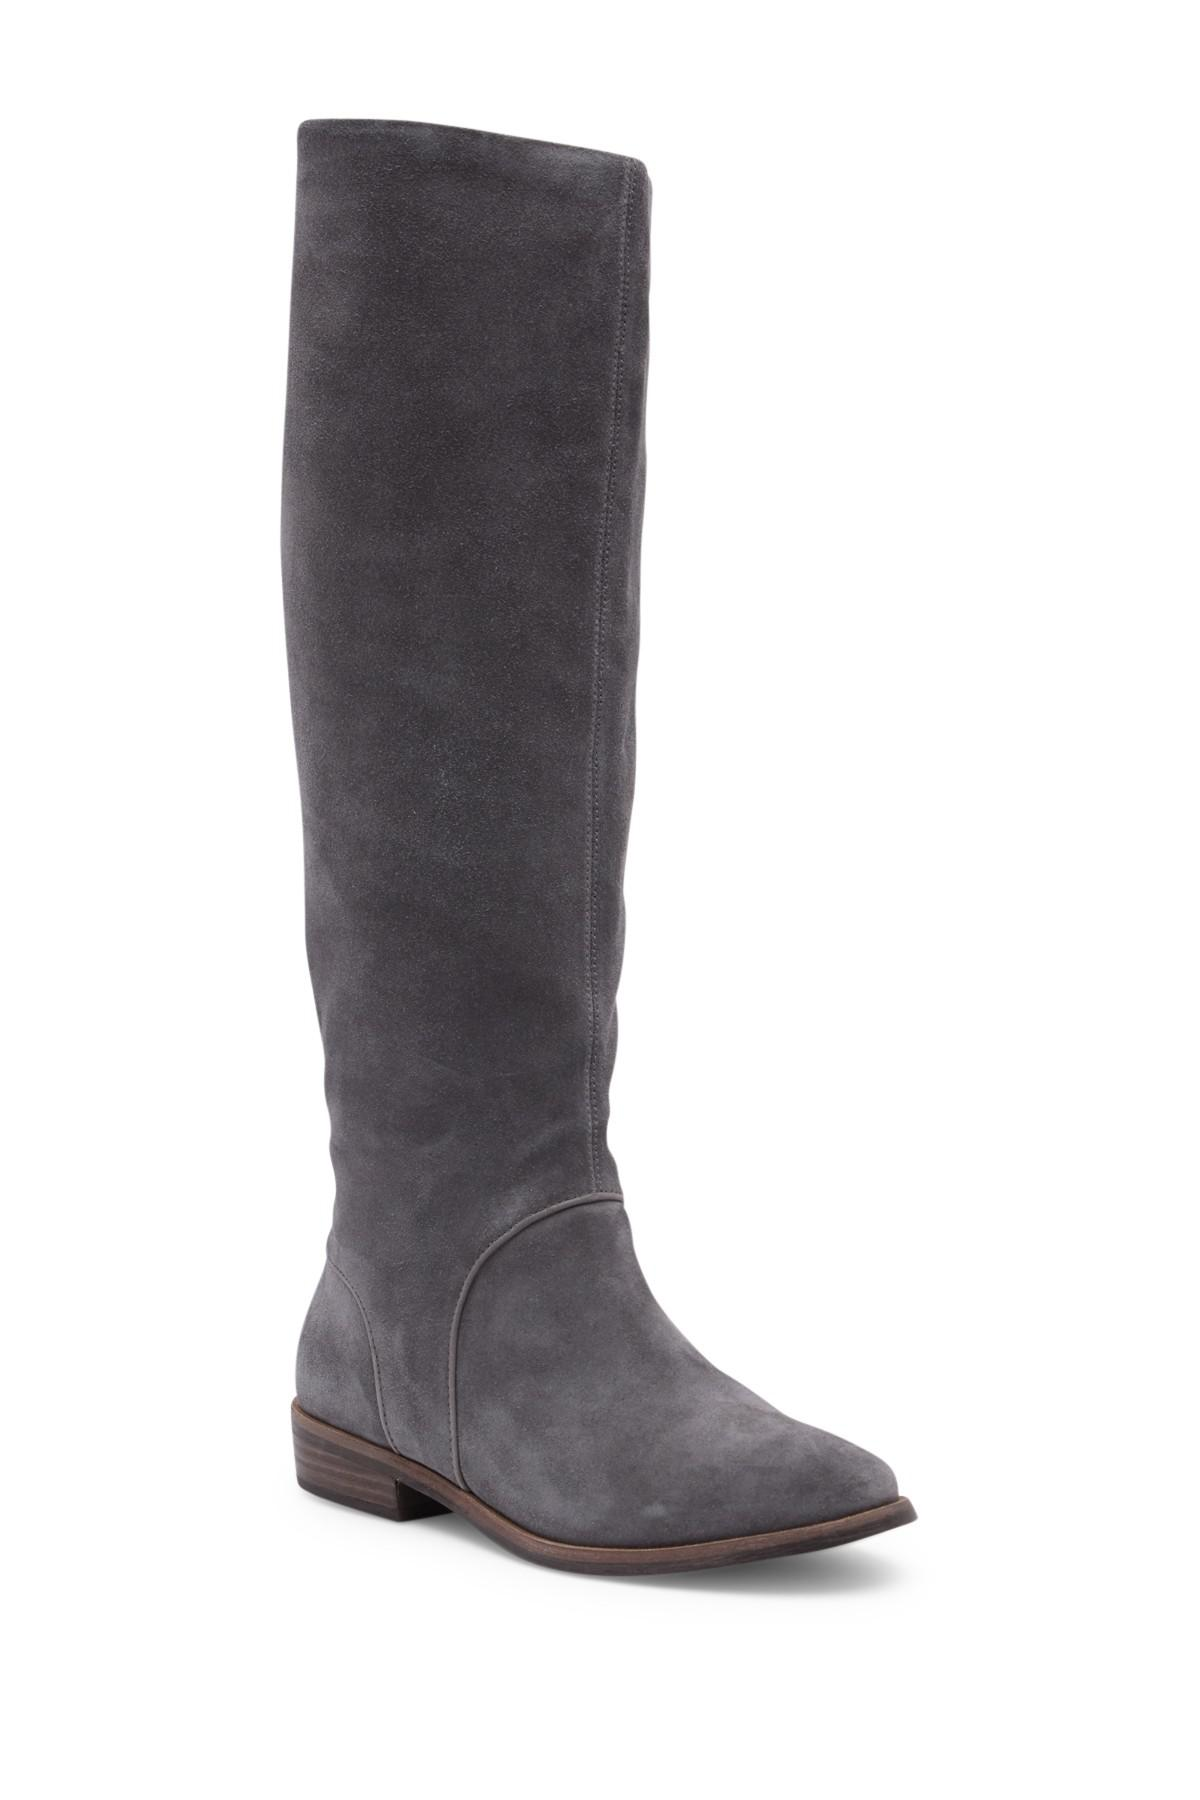 UGG. Gray (r) Daley Tall Boot (women)